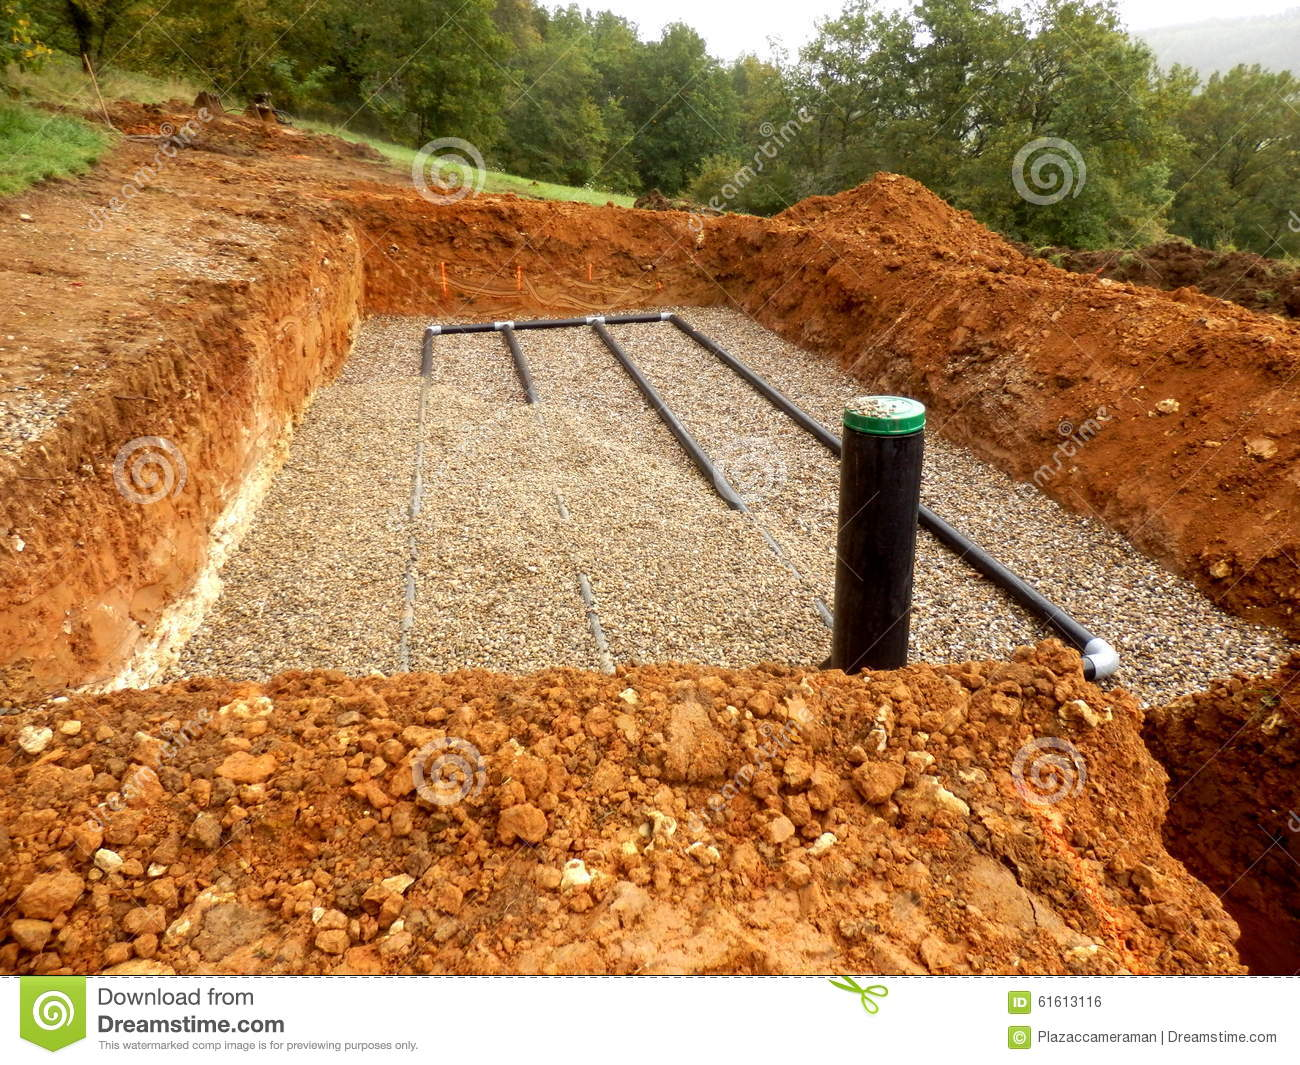 sand gravel drainage system bottom layer pipework laid construction 61613116